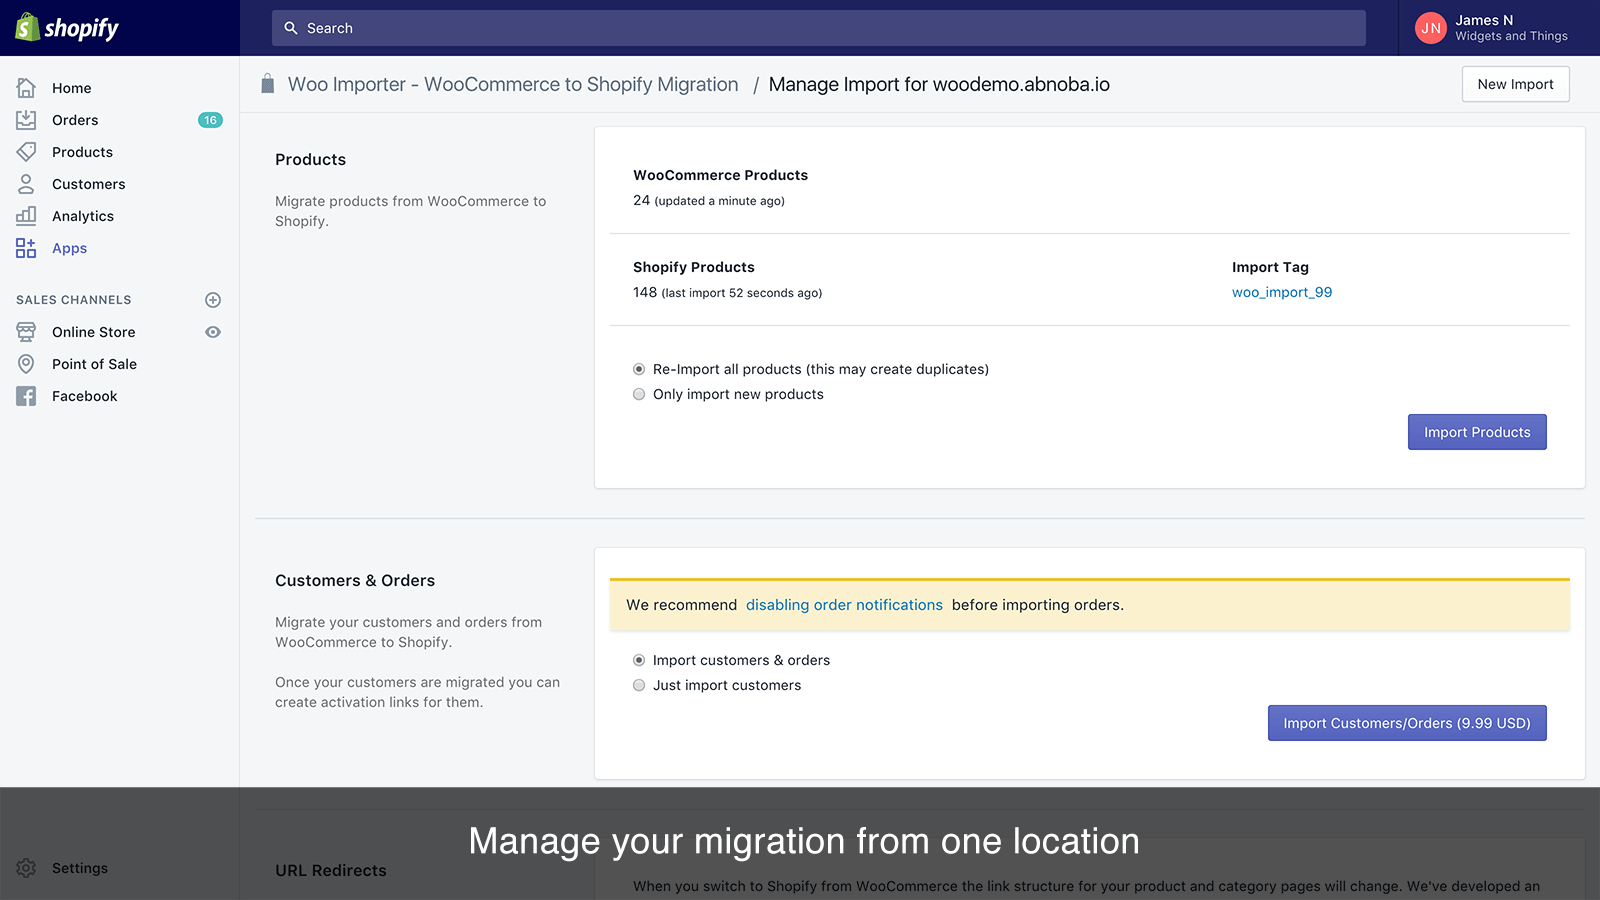 Manage your WooCommerce to Shopify Migration